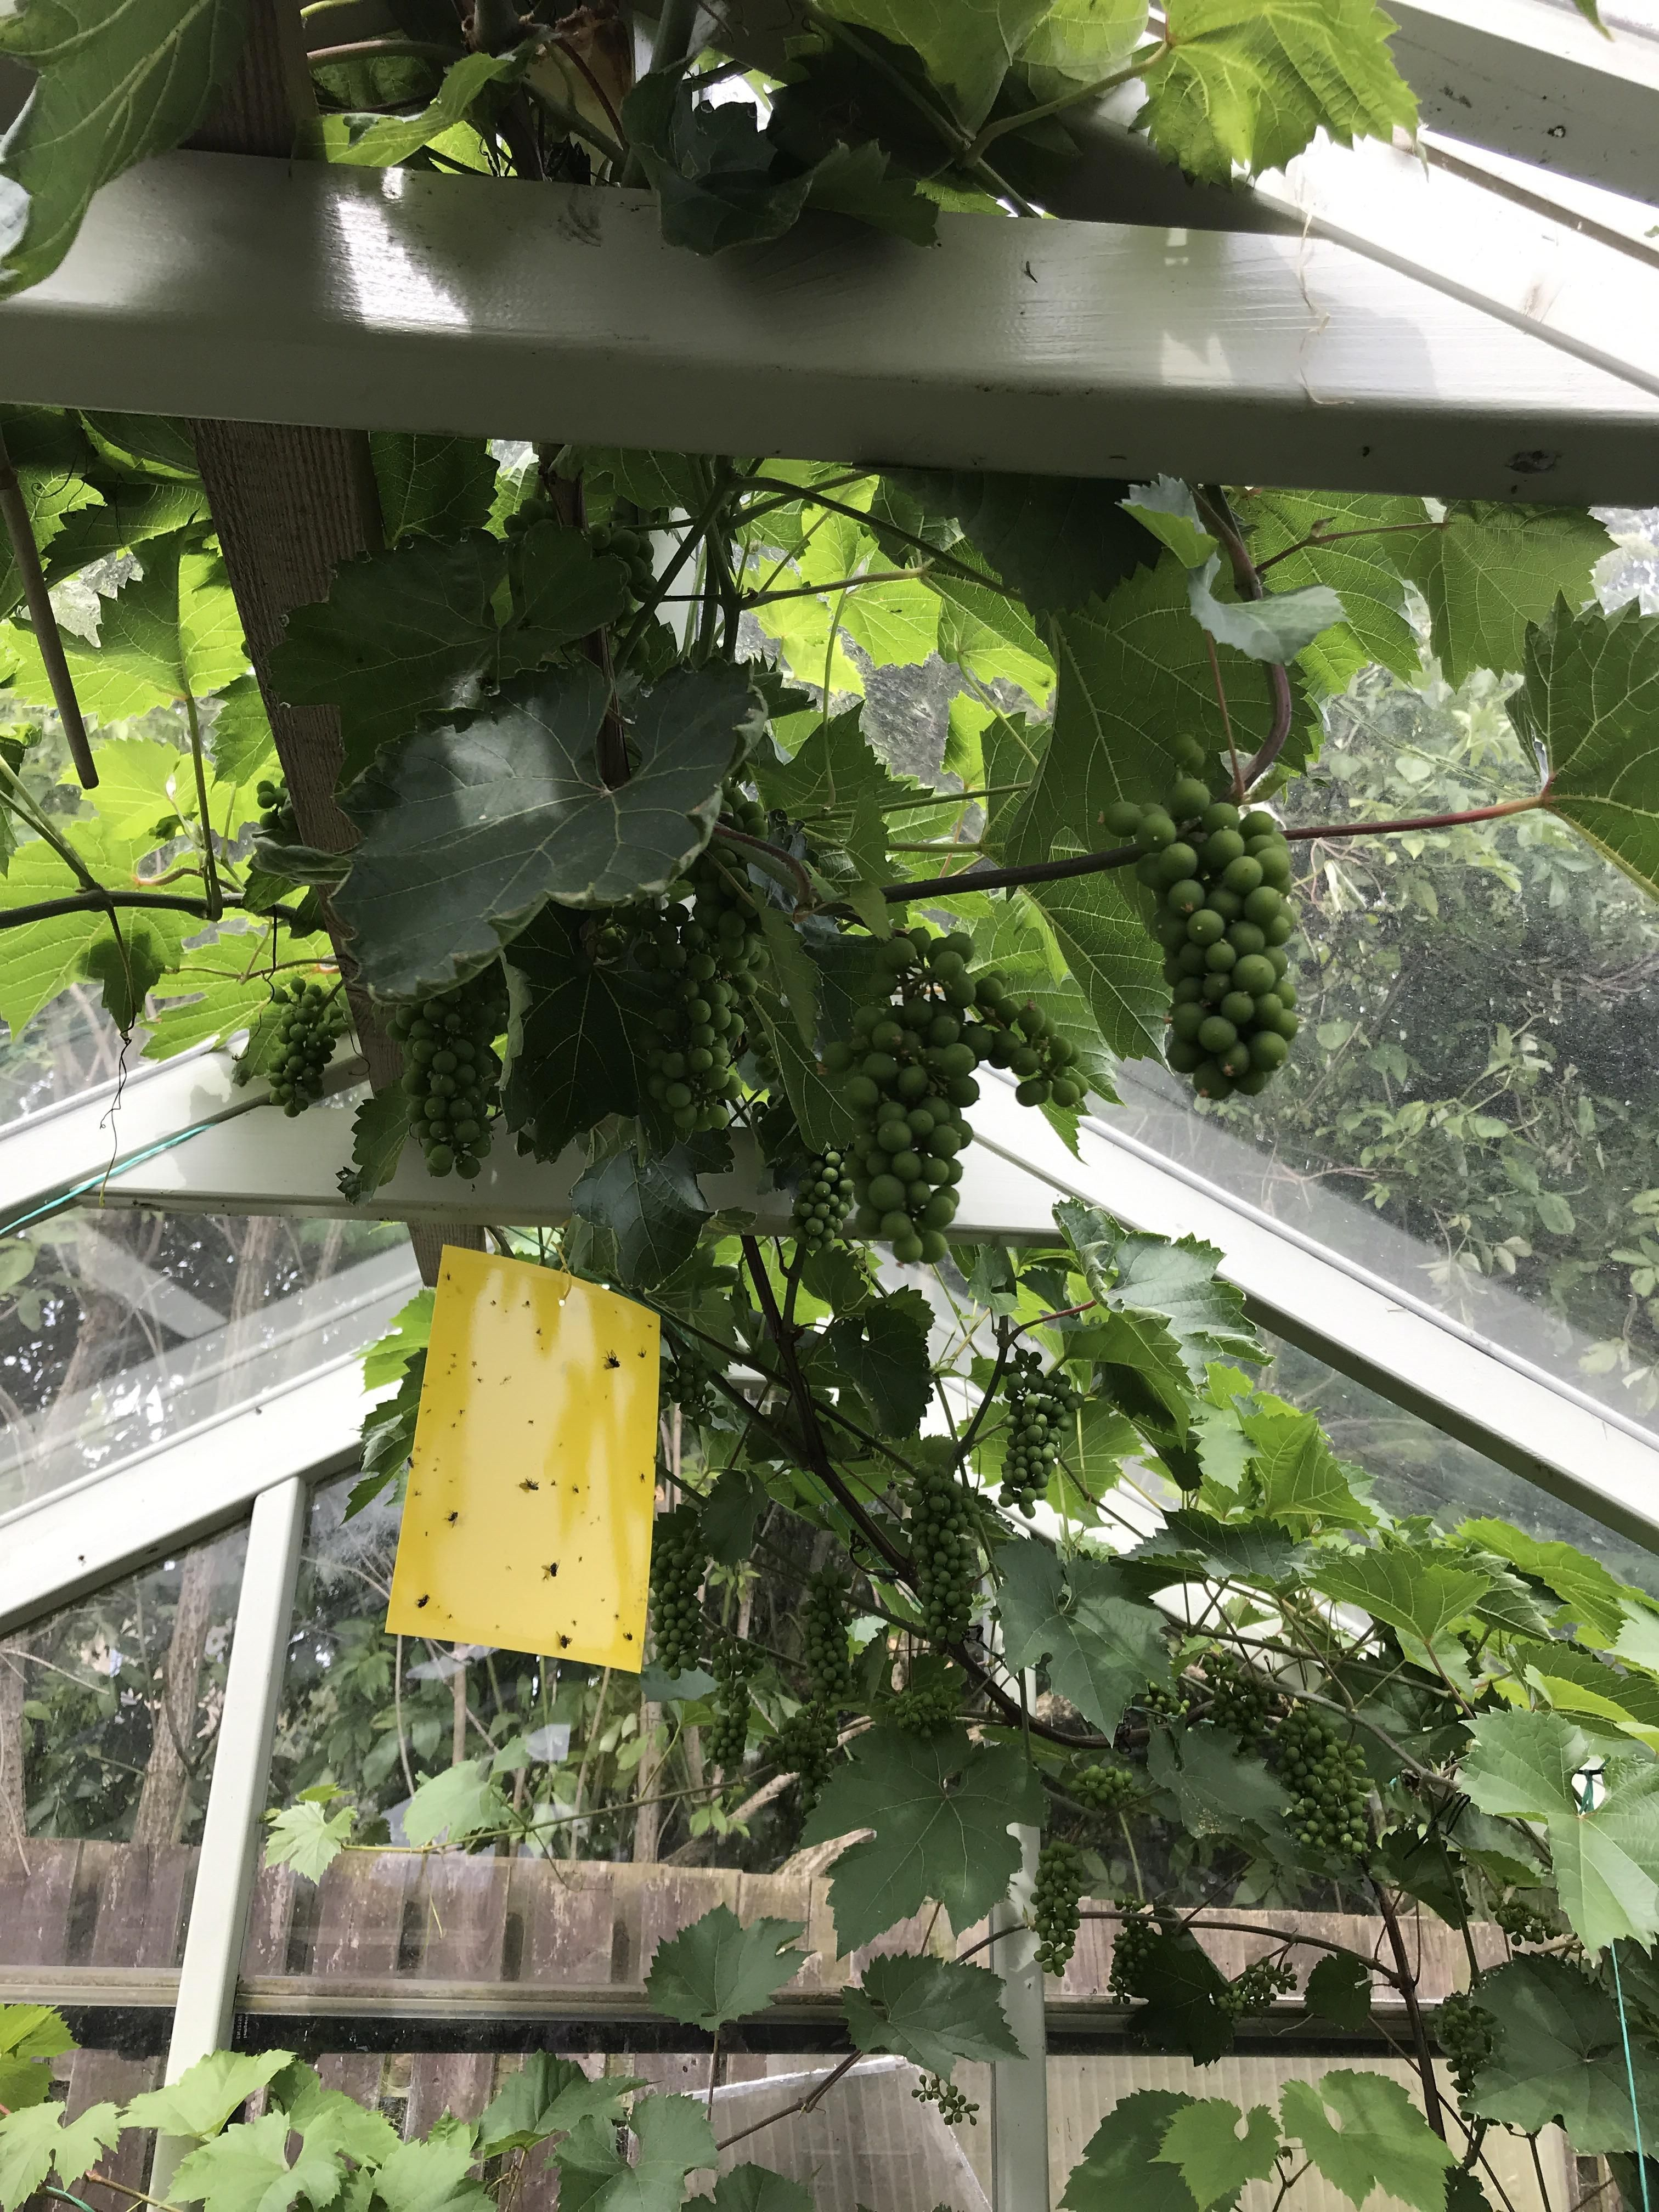 Grape Vine Routed Into Greenhouse 2 Years Ago Expecting To